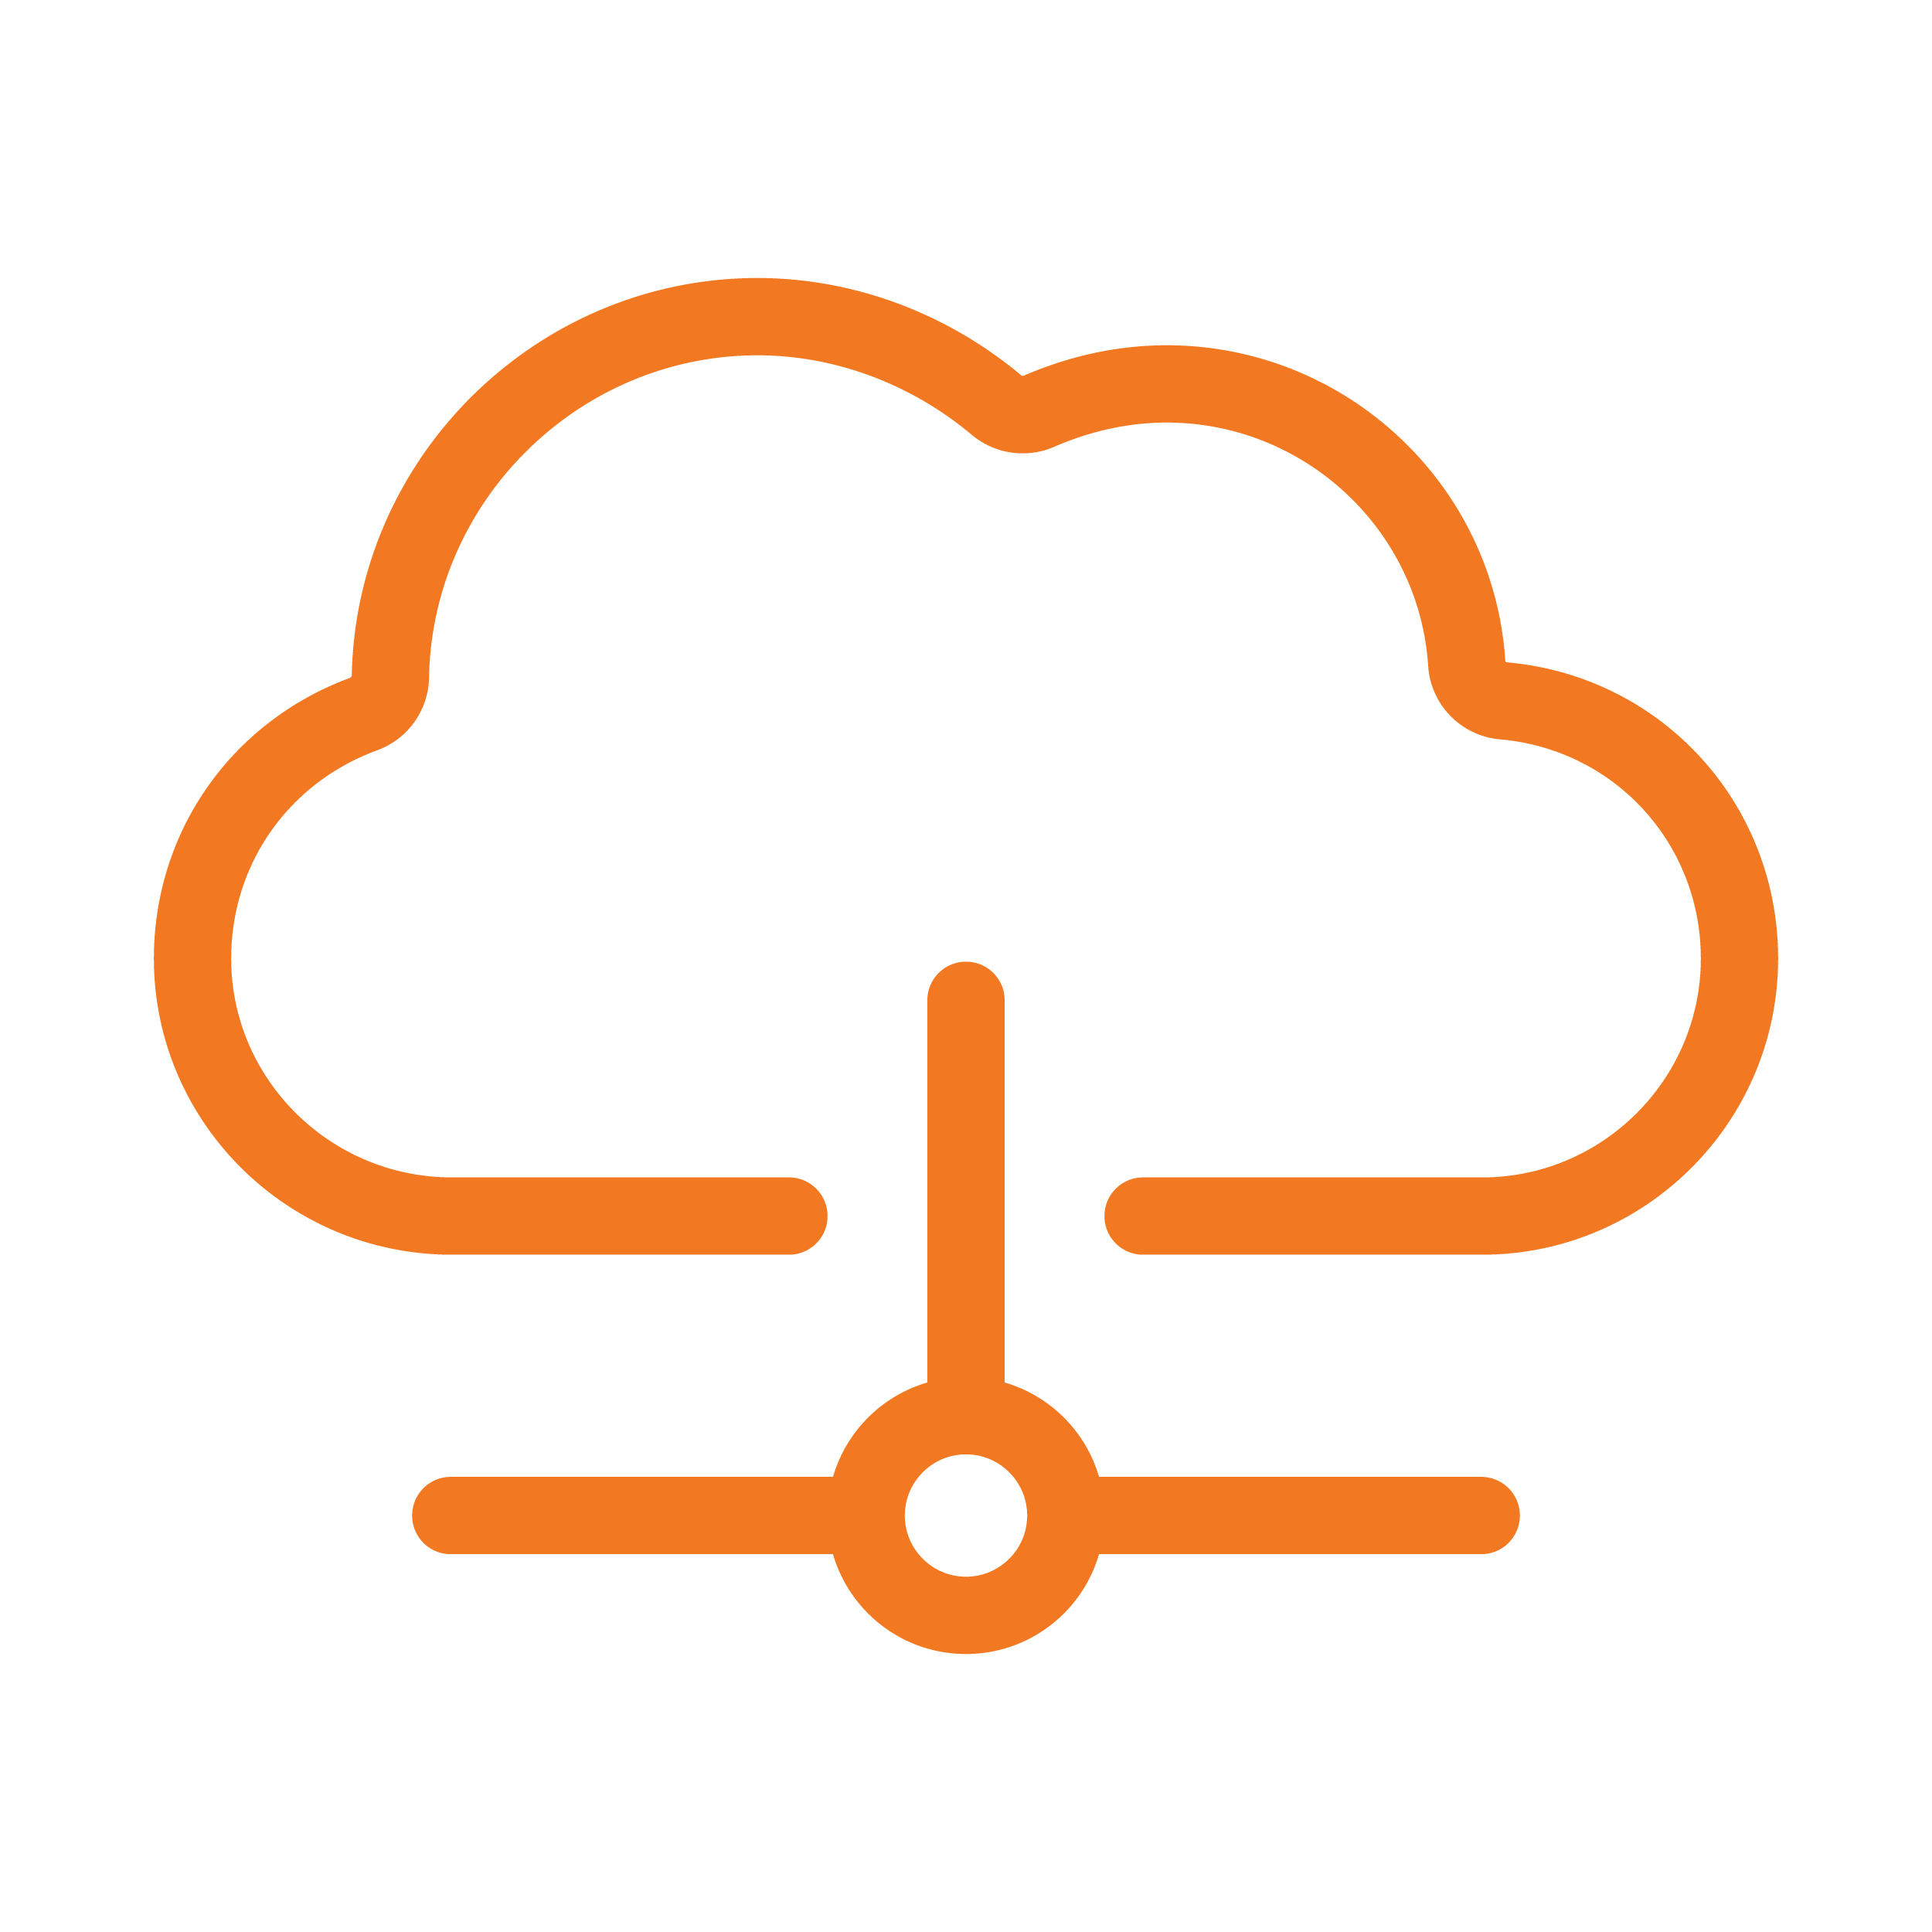 Cloud-page-icons-01